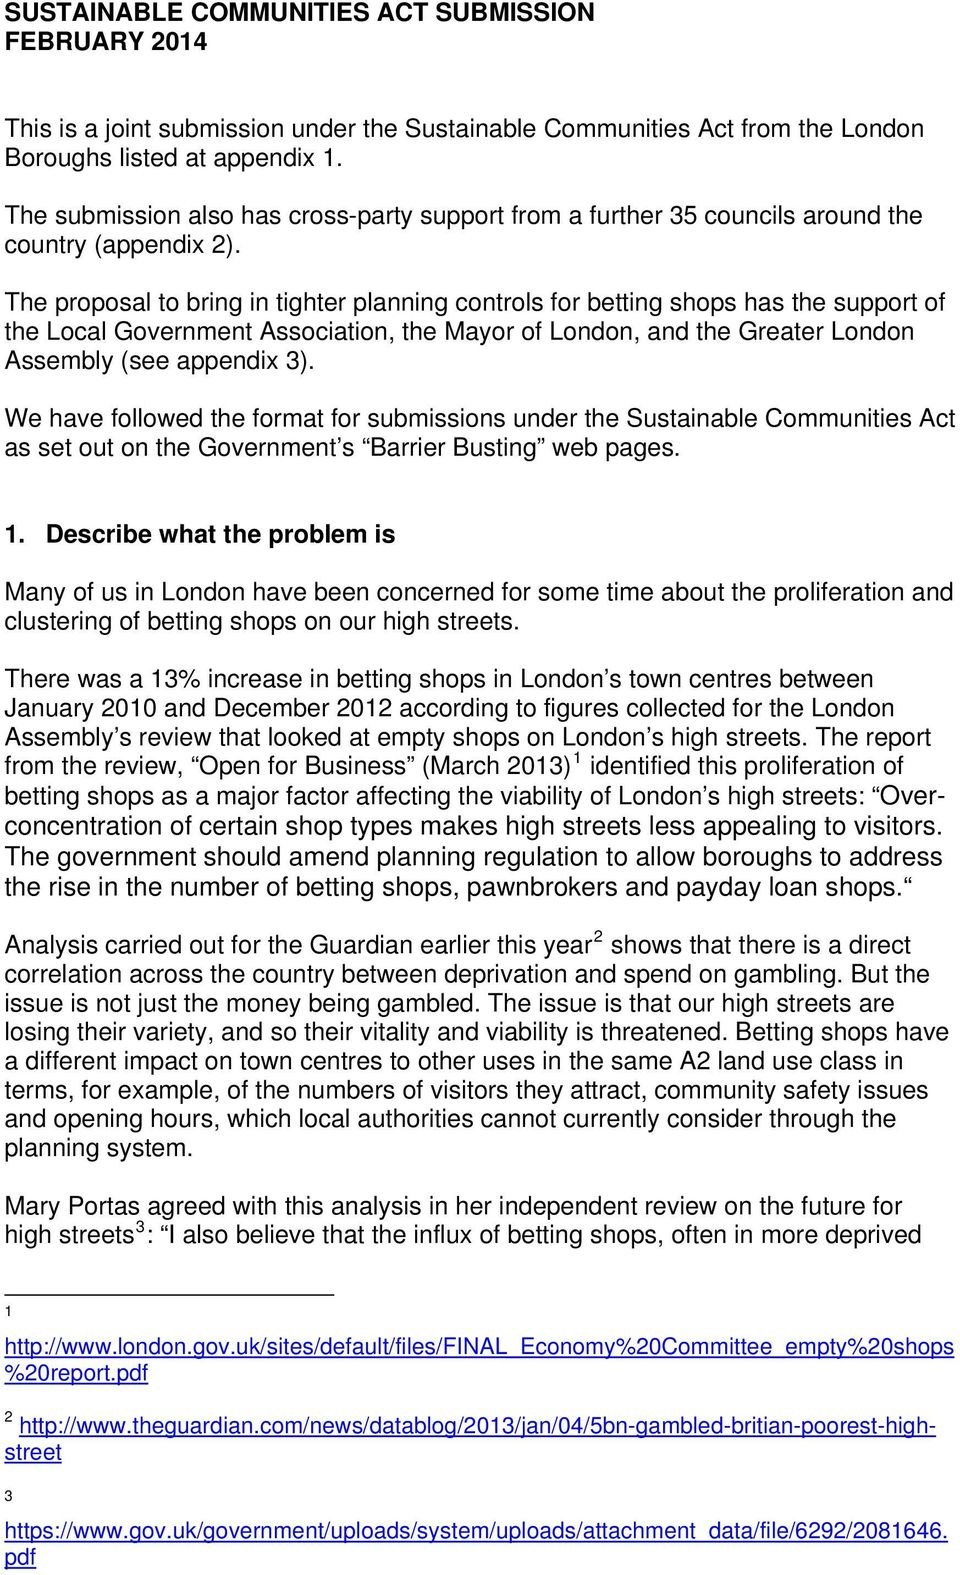 The proposal to bring in tighter planning controls for betting shops has the support of the Local Government Association, the Mayor of London, and the Greater London Assembly (see appendix 3).